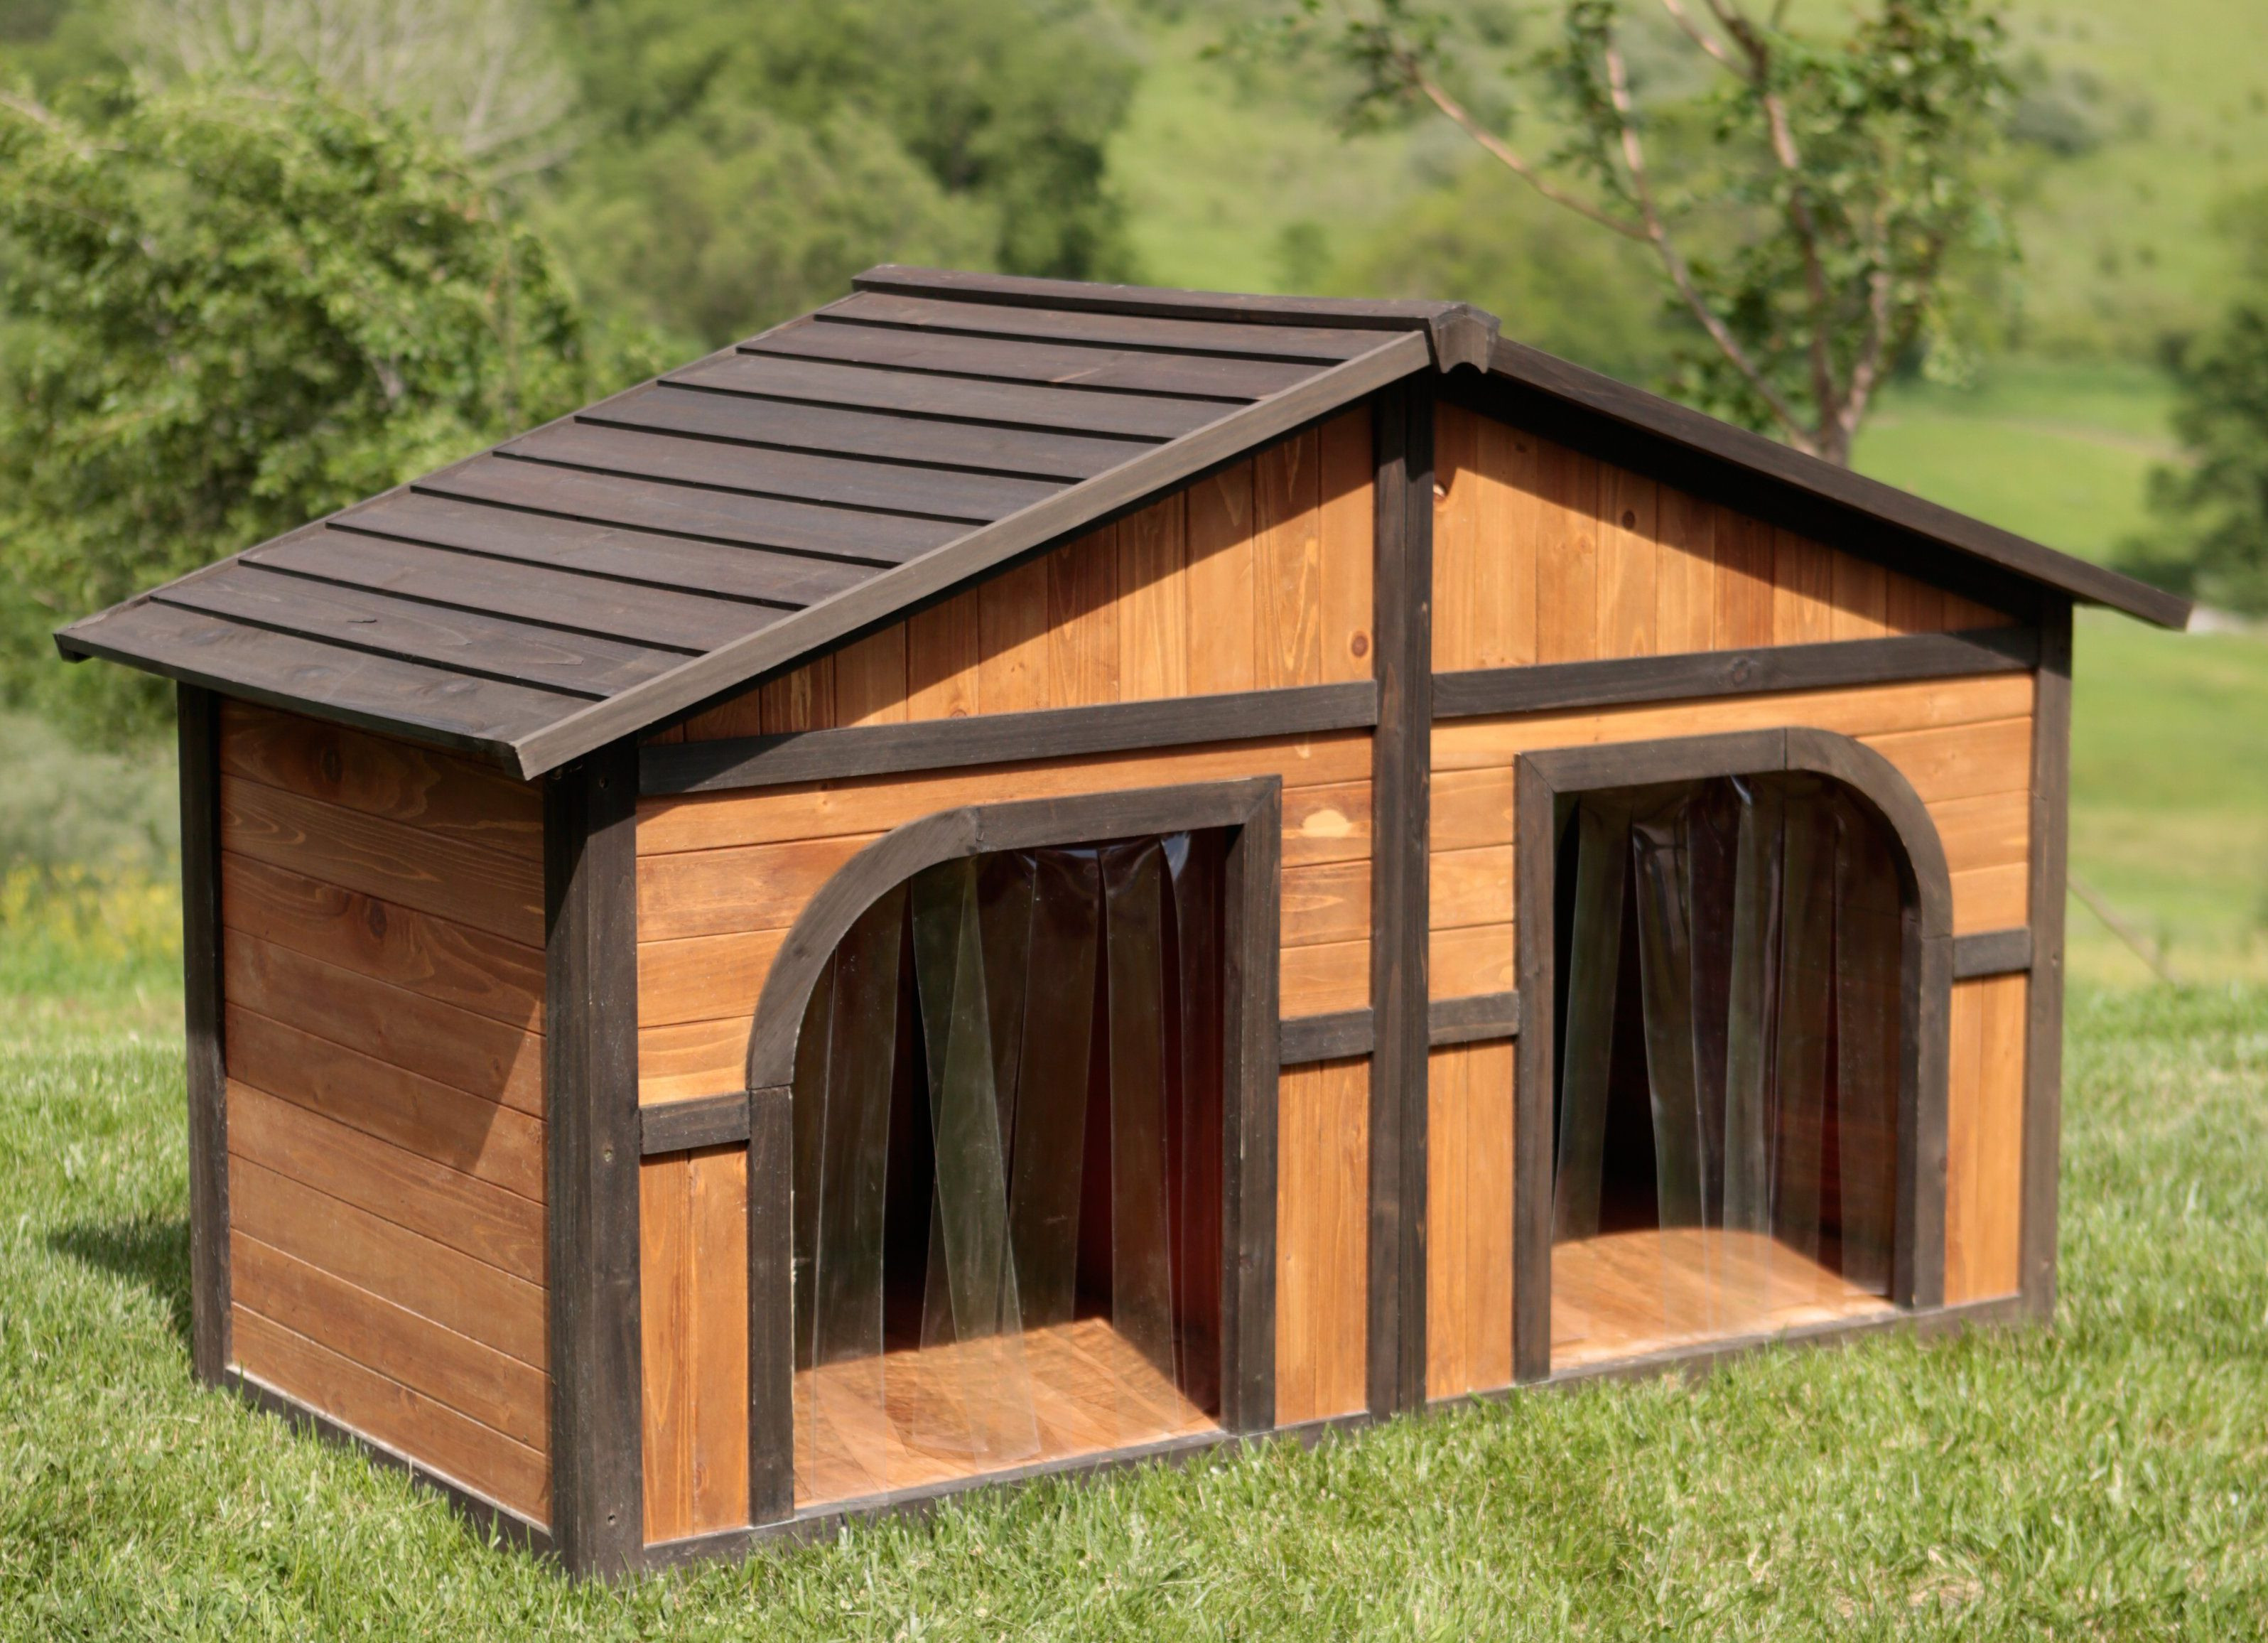 Best ideas about DIY Dog House Kits . Save or Pin 10 Simple But Beautiful DIY Dog House Designs That You Can Now.